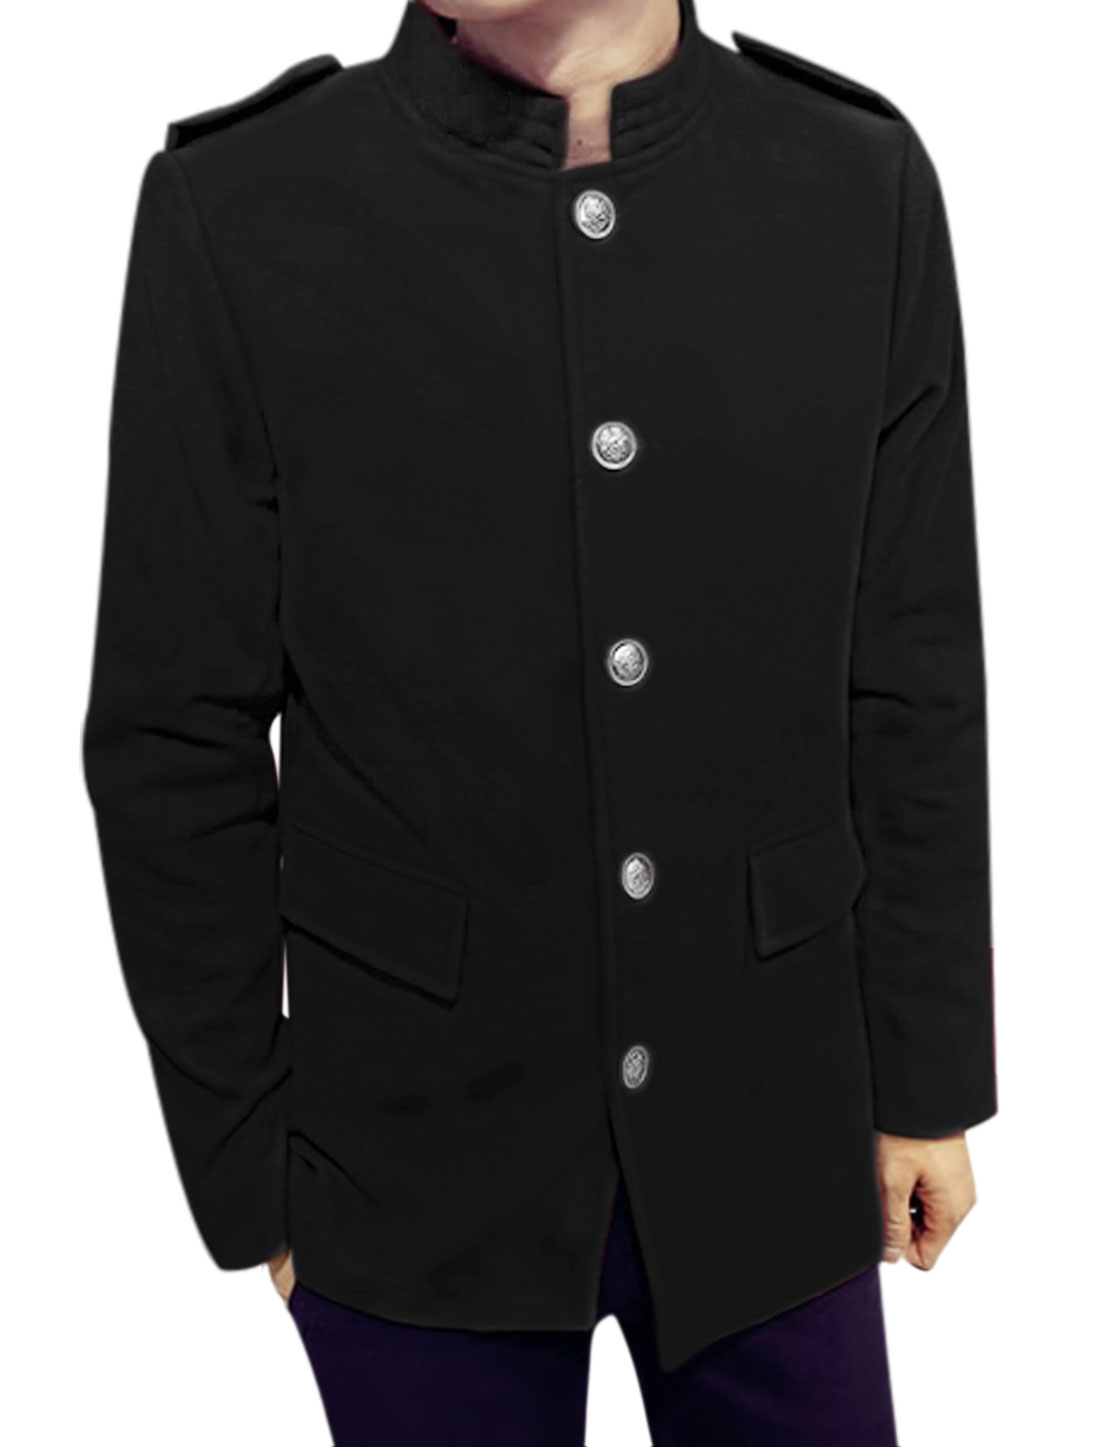 Men Two Flap Pockets Stand Collar Button Front Slim Fit Worsted Coat Black M